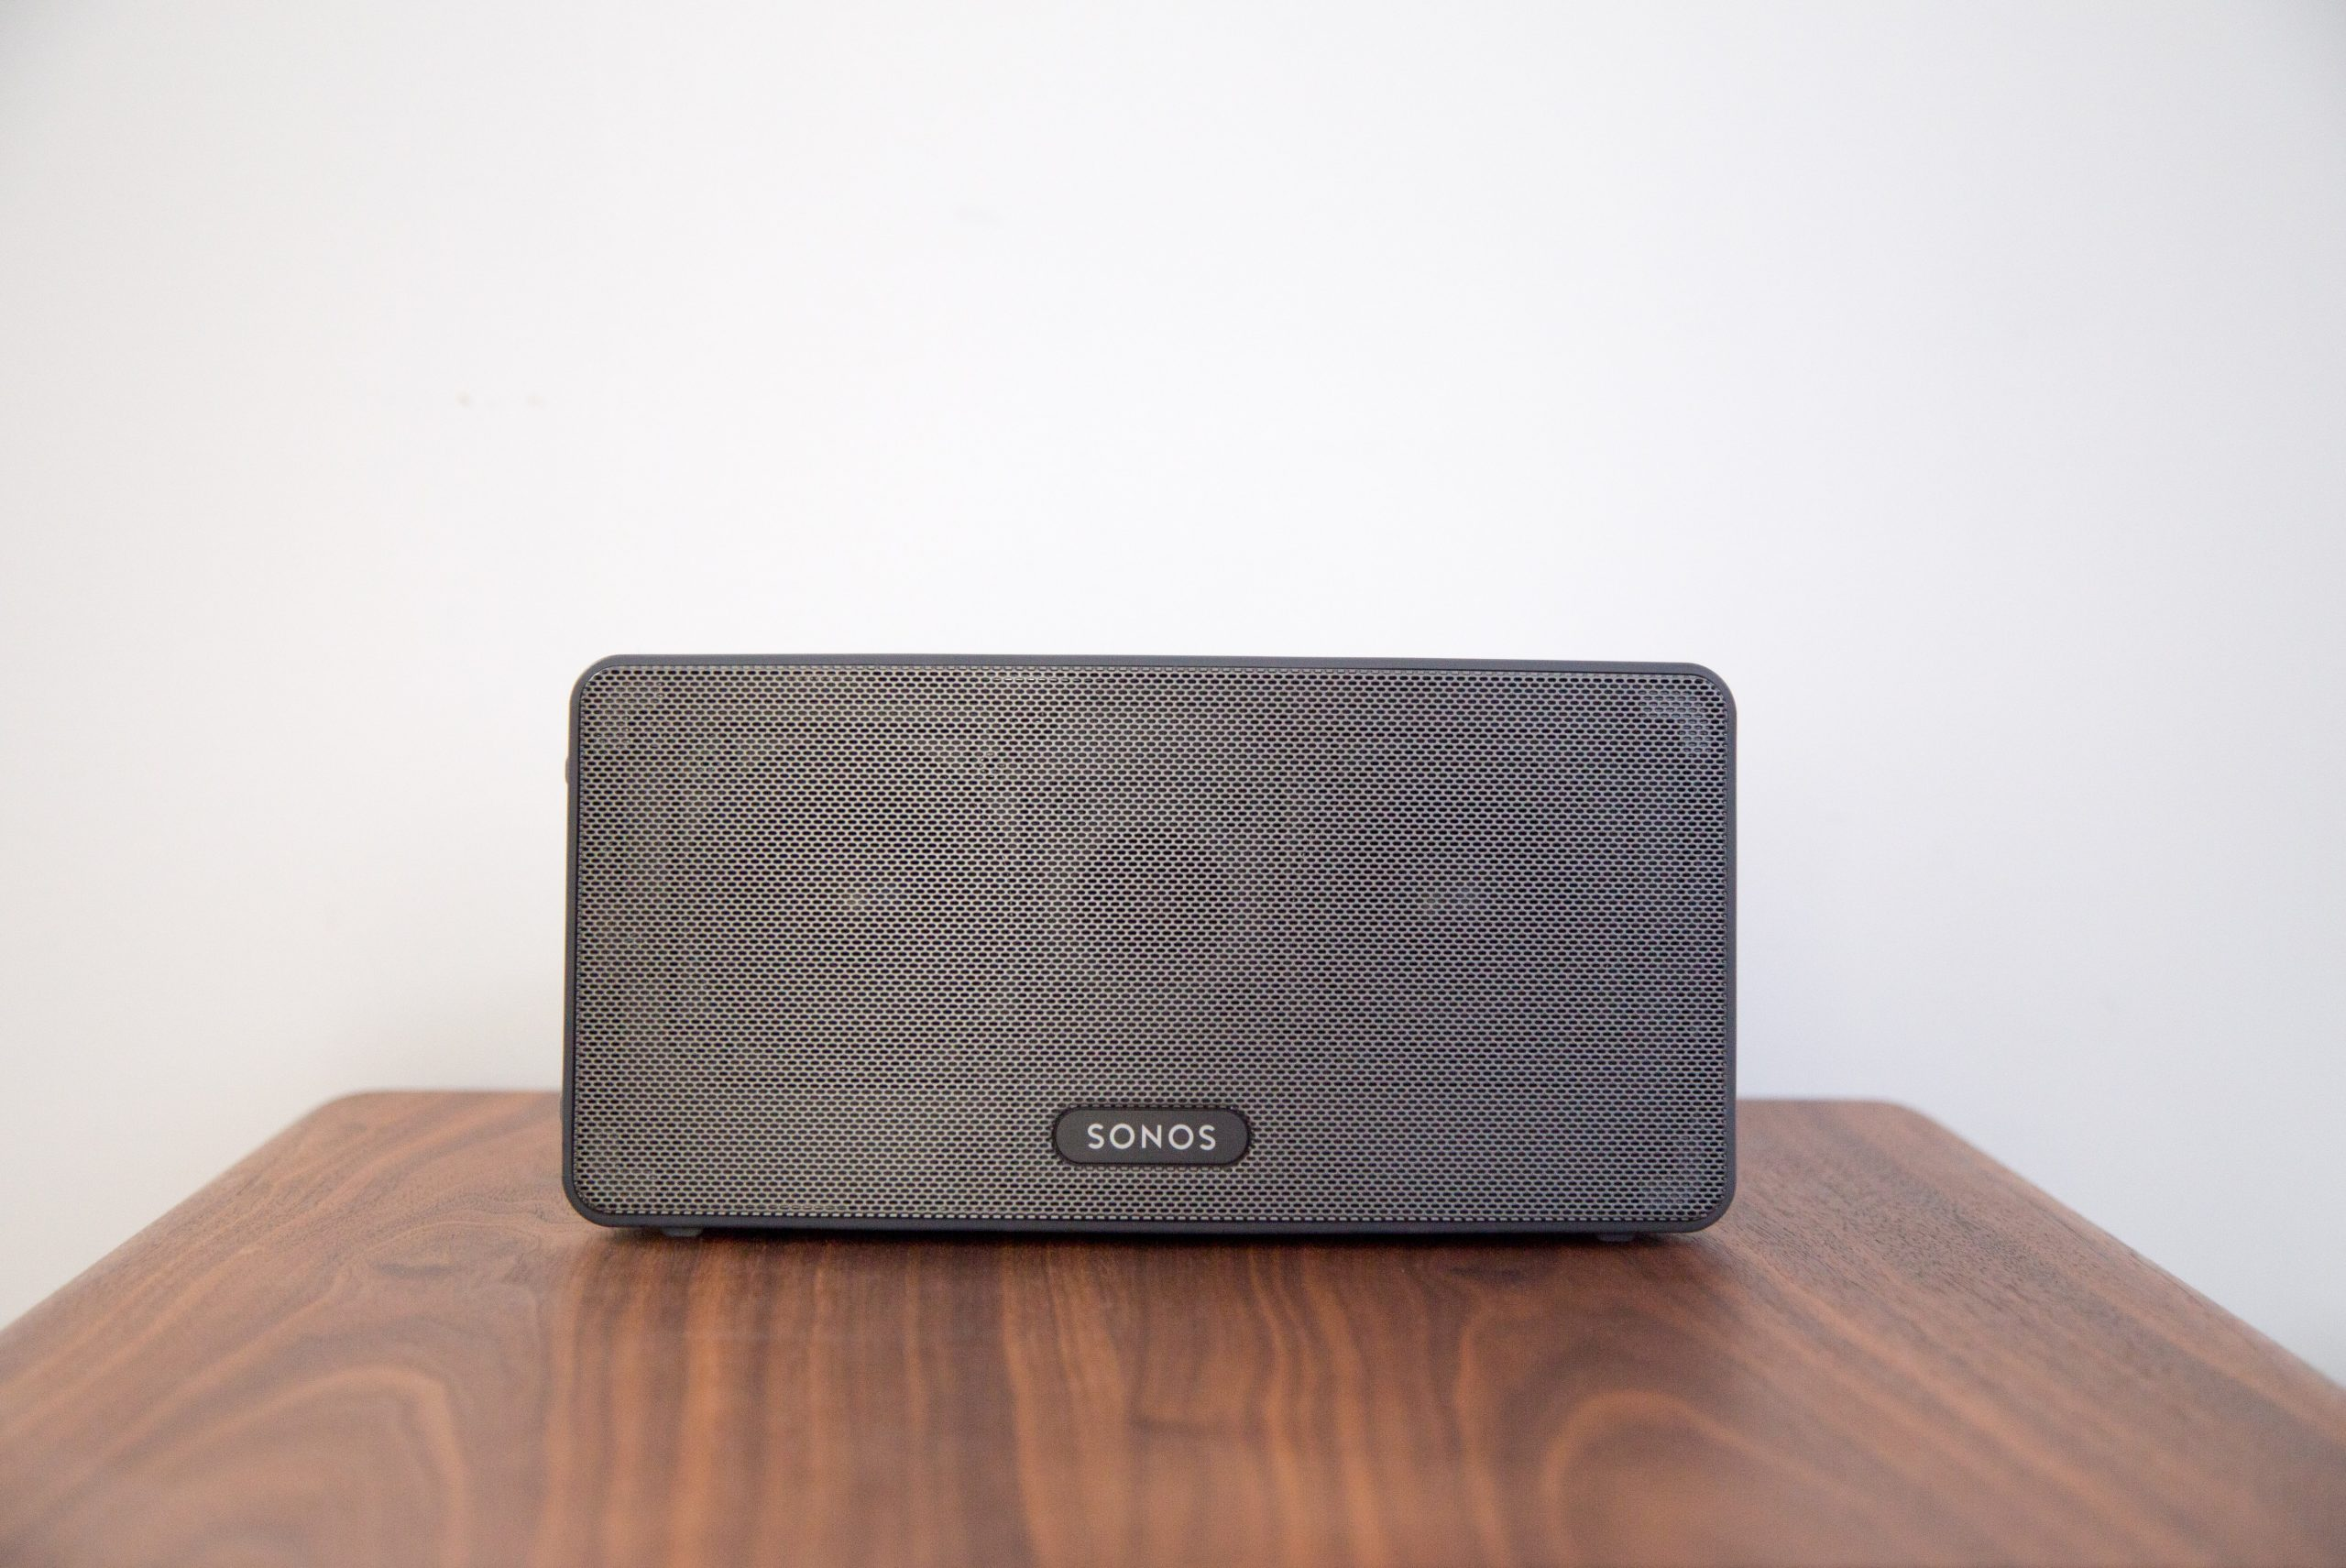 which sonos set up